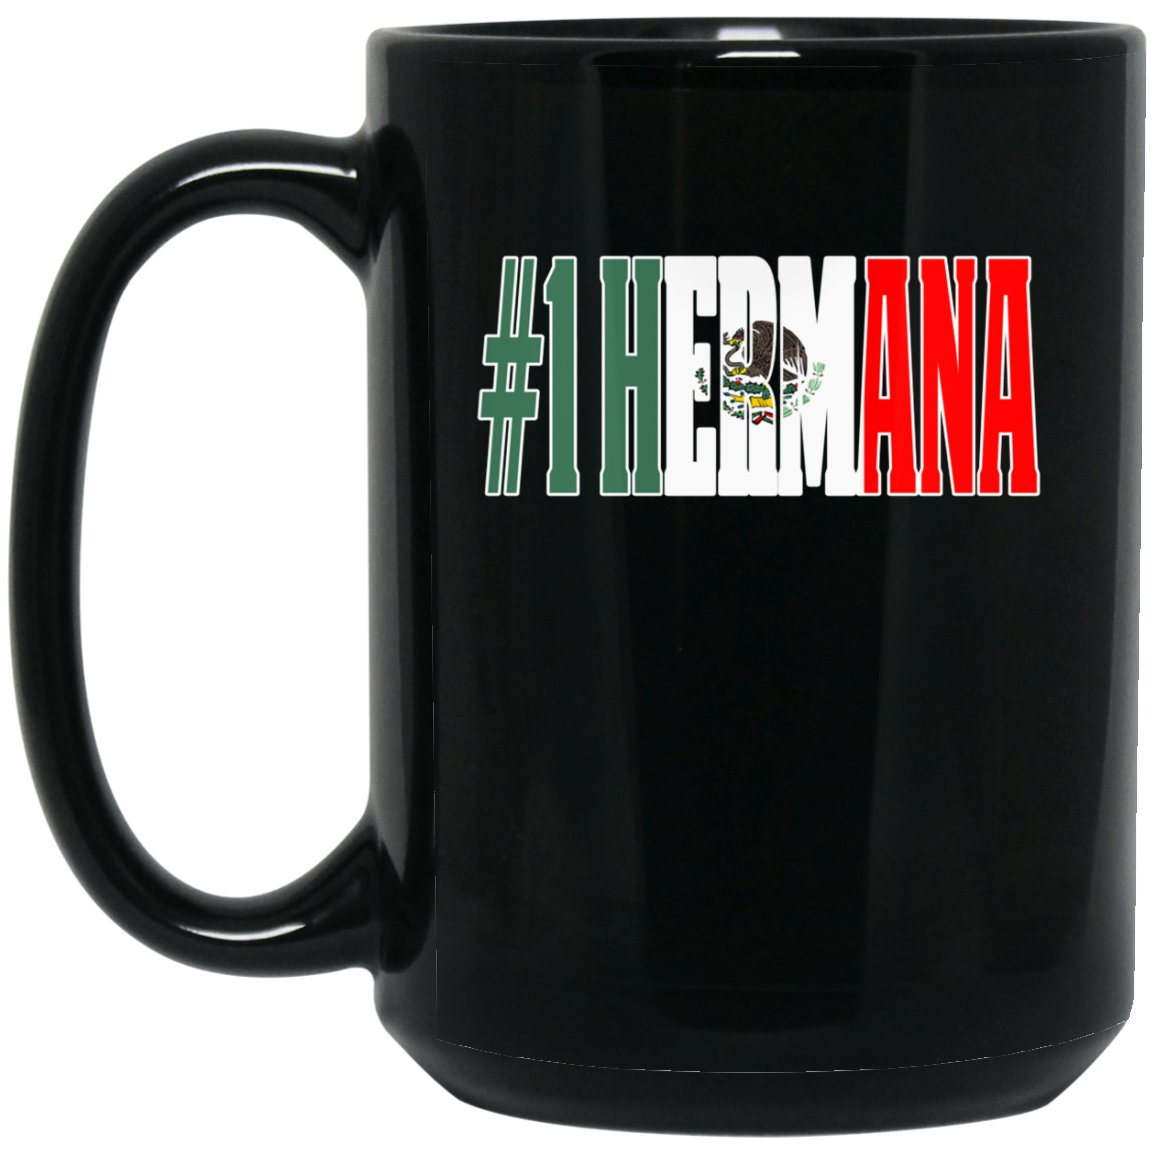 Cool Hermana Gift Coffee Mug For Mexican Flag Mug for Mexican Pride Flag Outline Large Black Mug